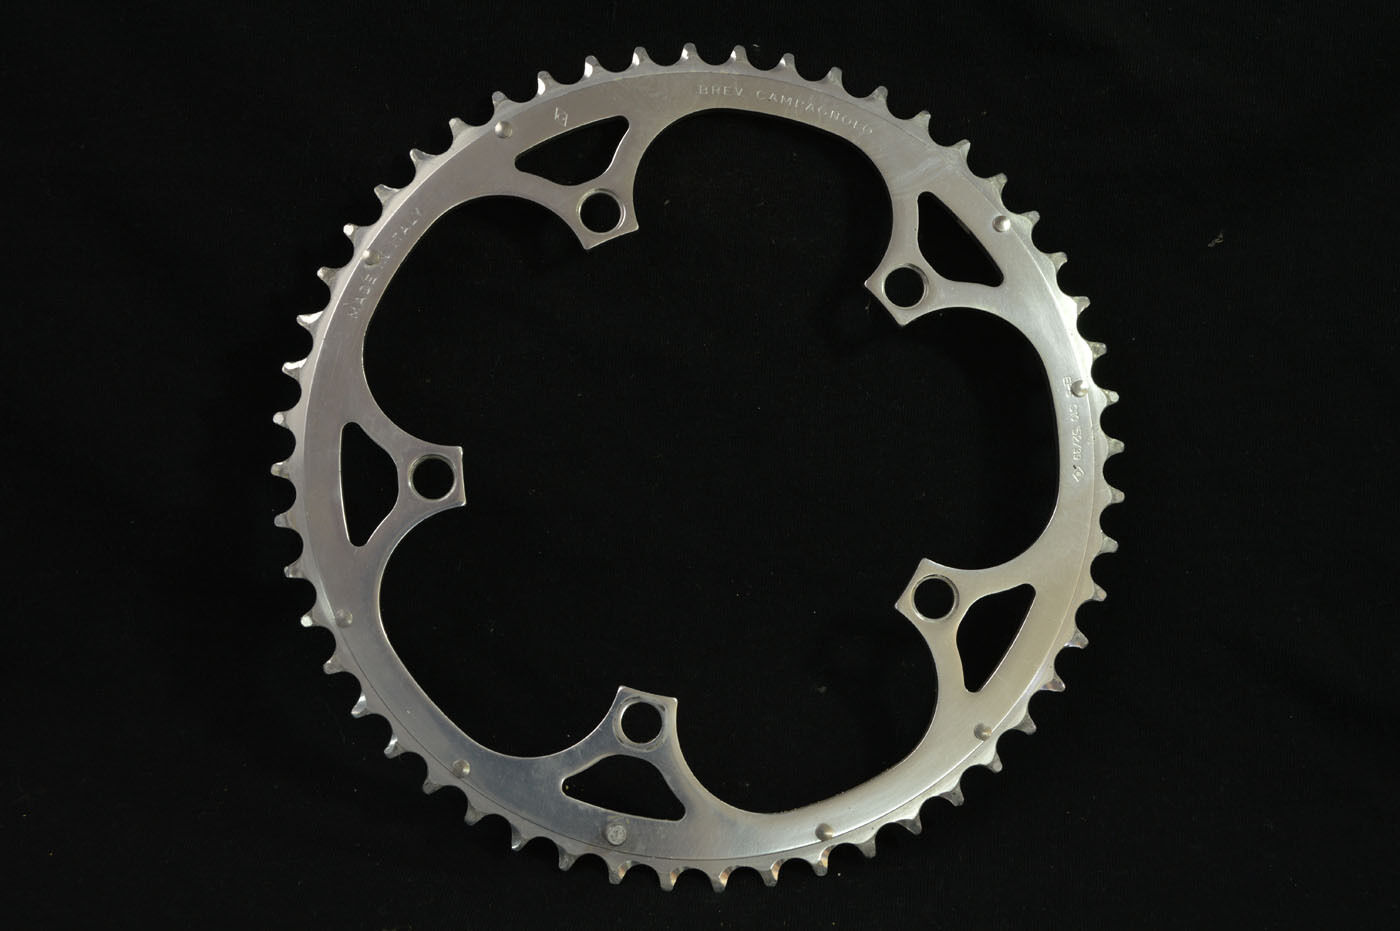 Chainring Campagnolo C-10 EPS  Record alloy 52t bcd- 135  for cheap